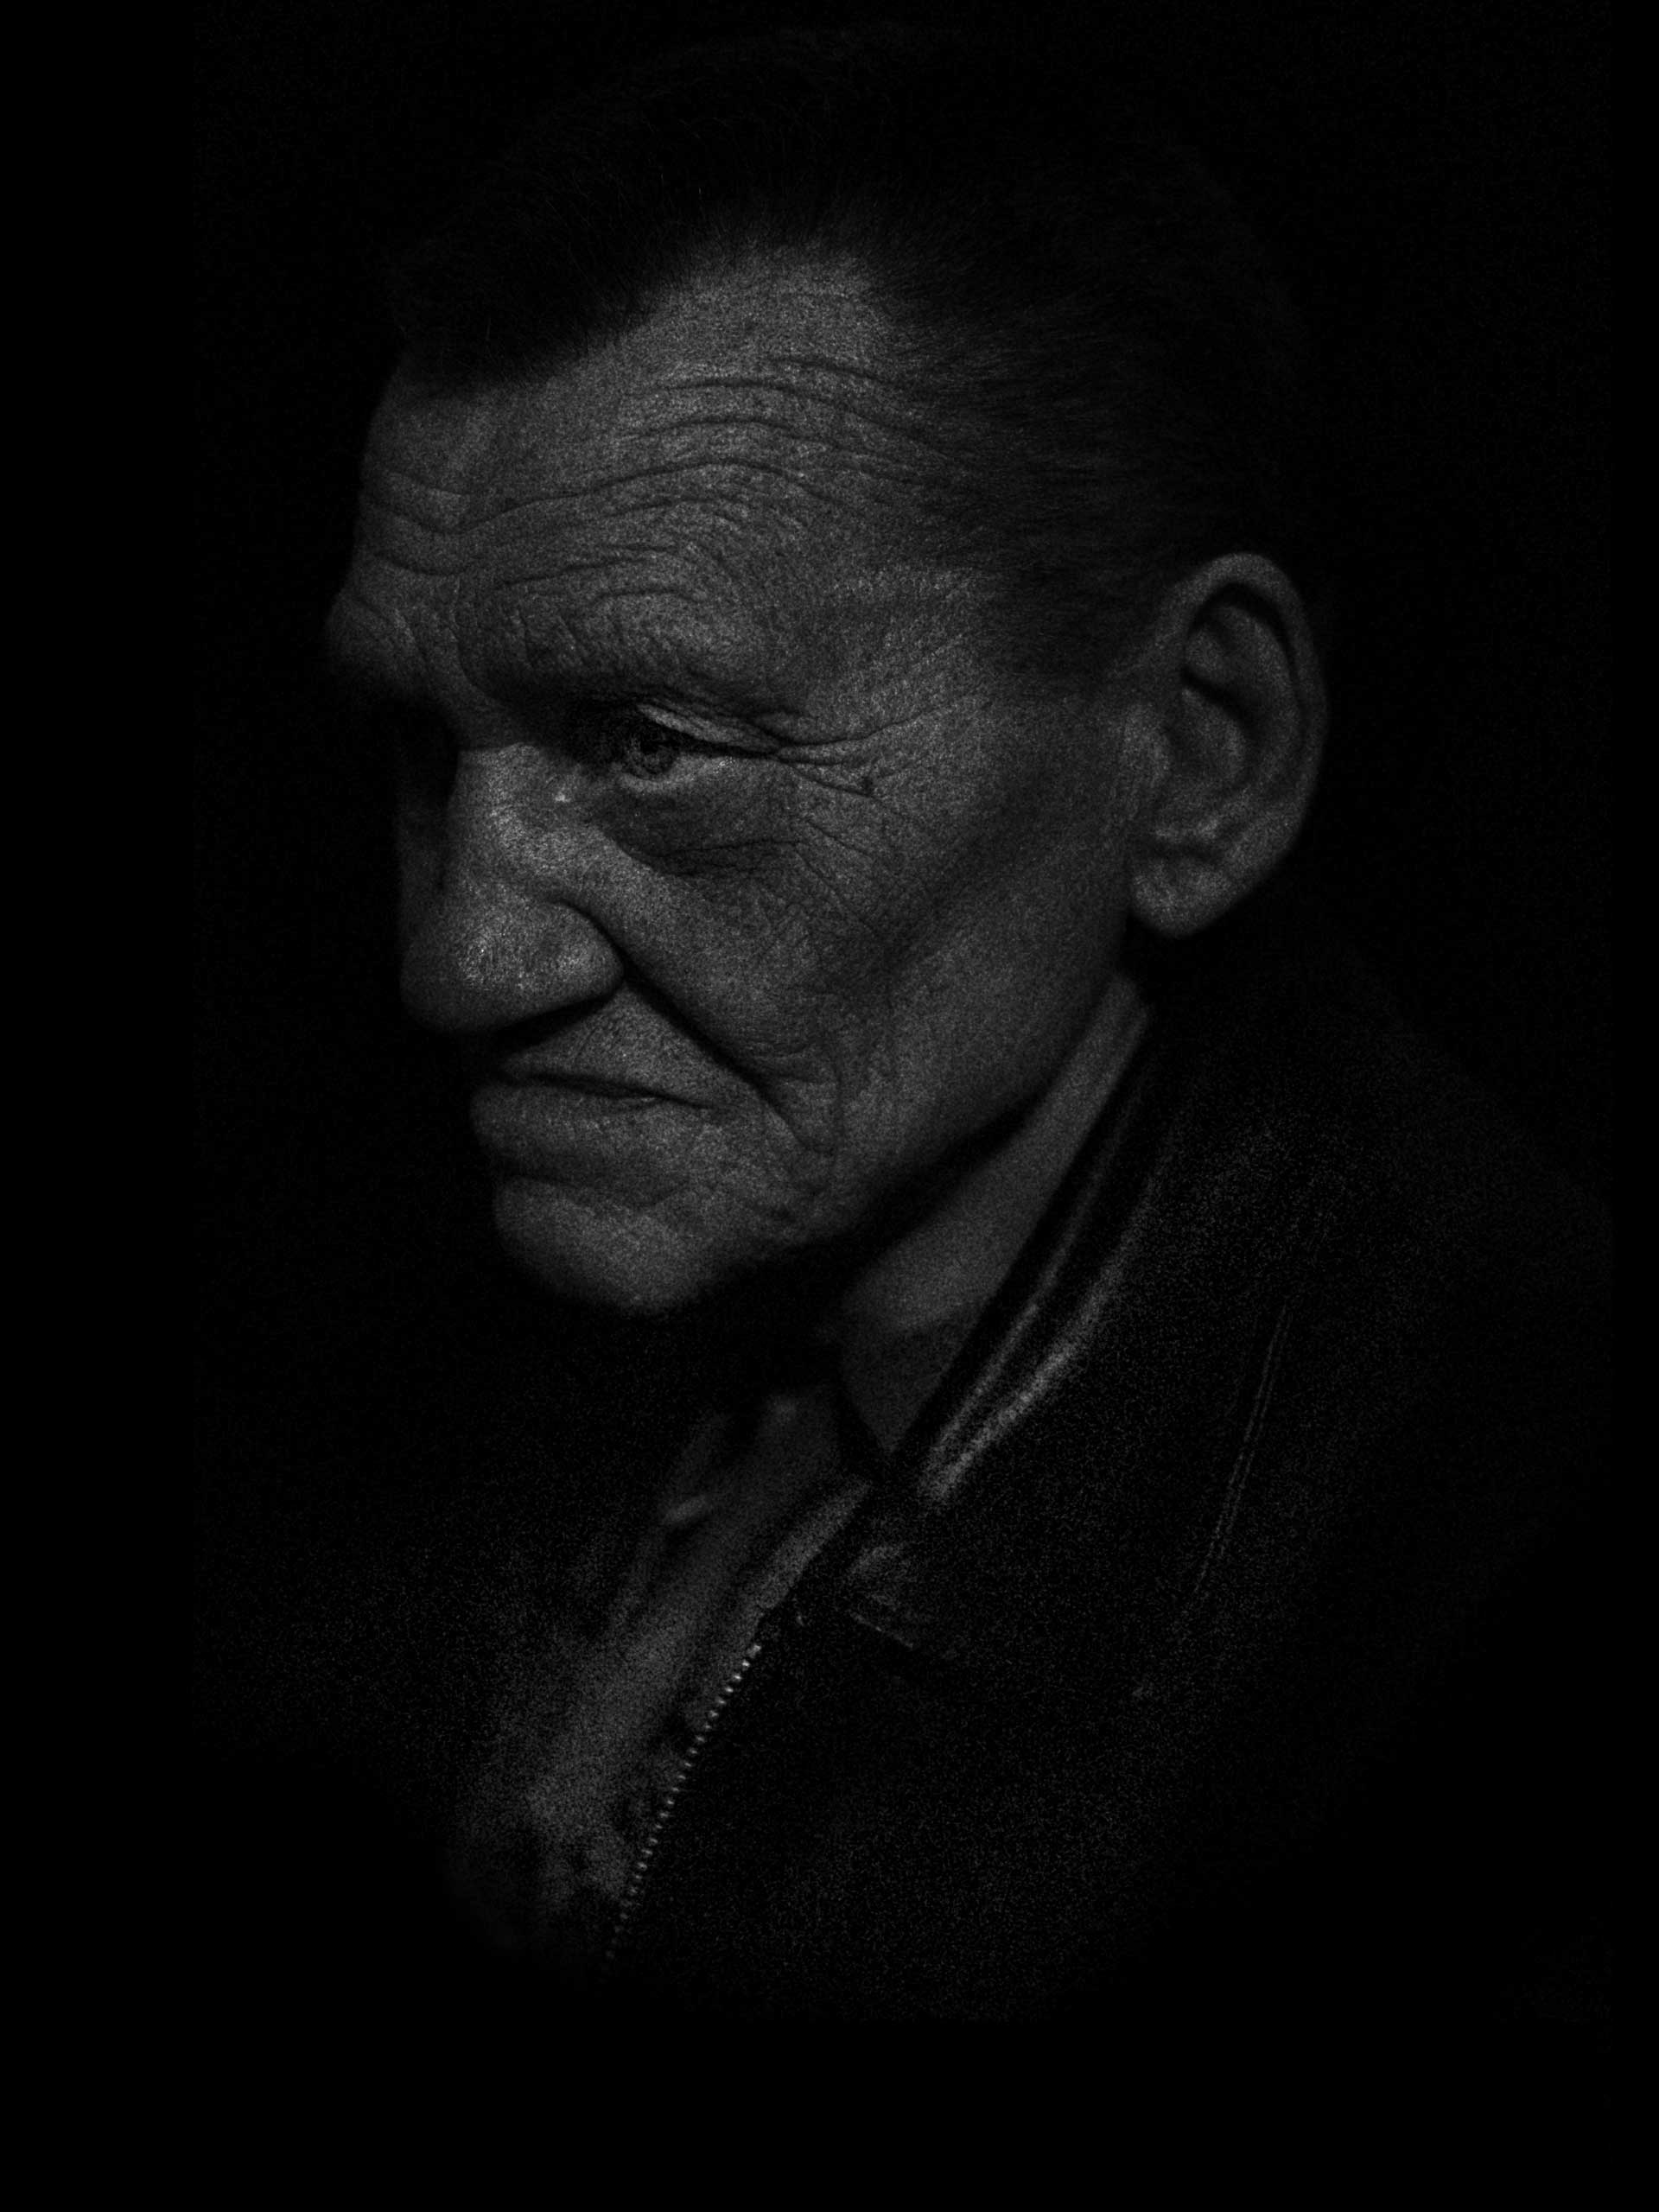 Alexander is an elderly man living in the shelter with his sister and her family. Donetsk, Petrovsky District of Ukraine. Nov. 1, 2014.